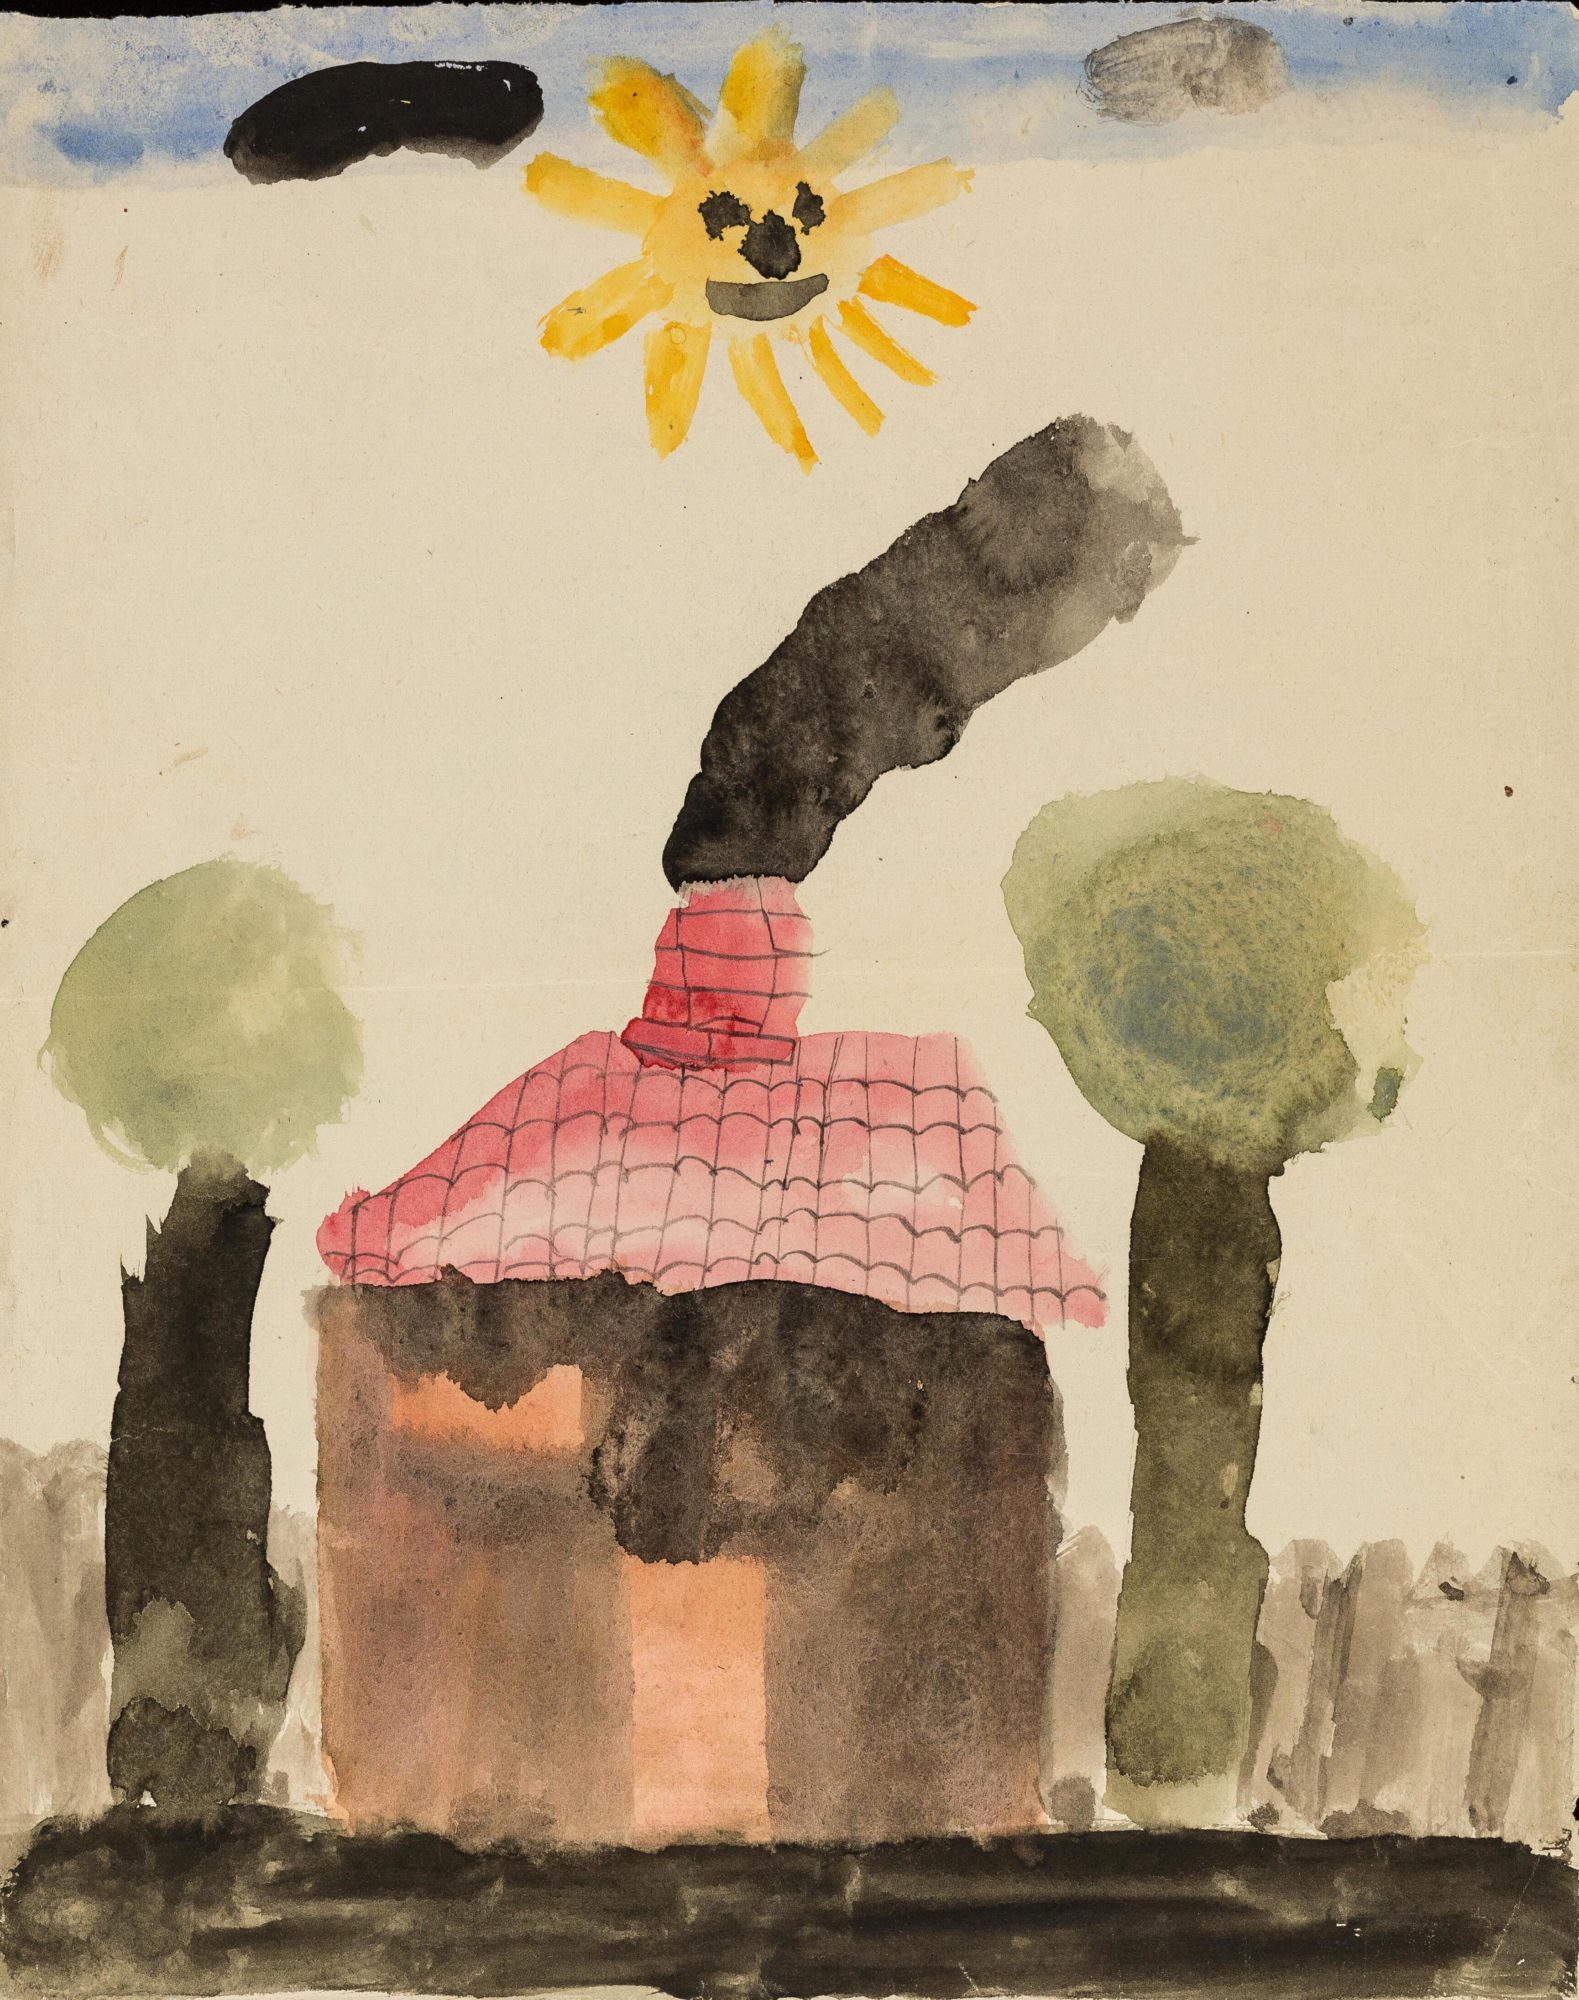 Painting of a house by 'Edgar', one of Klein's child patients in 1923